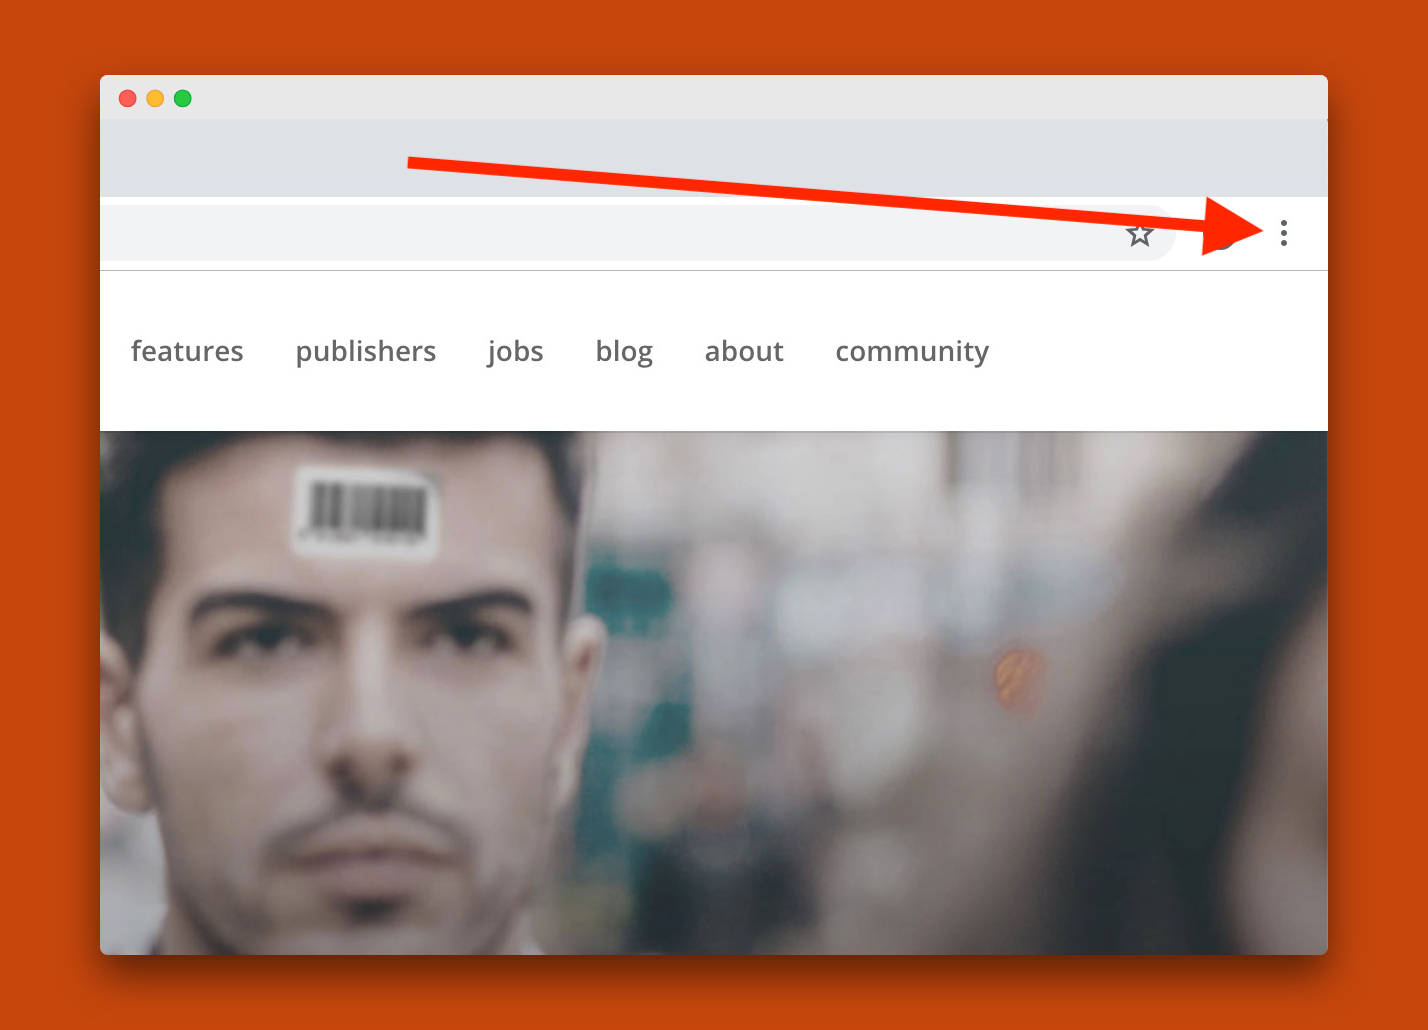 How to Activate PiP (Picture in Picture) In the Brave Browser